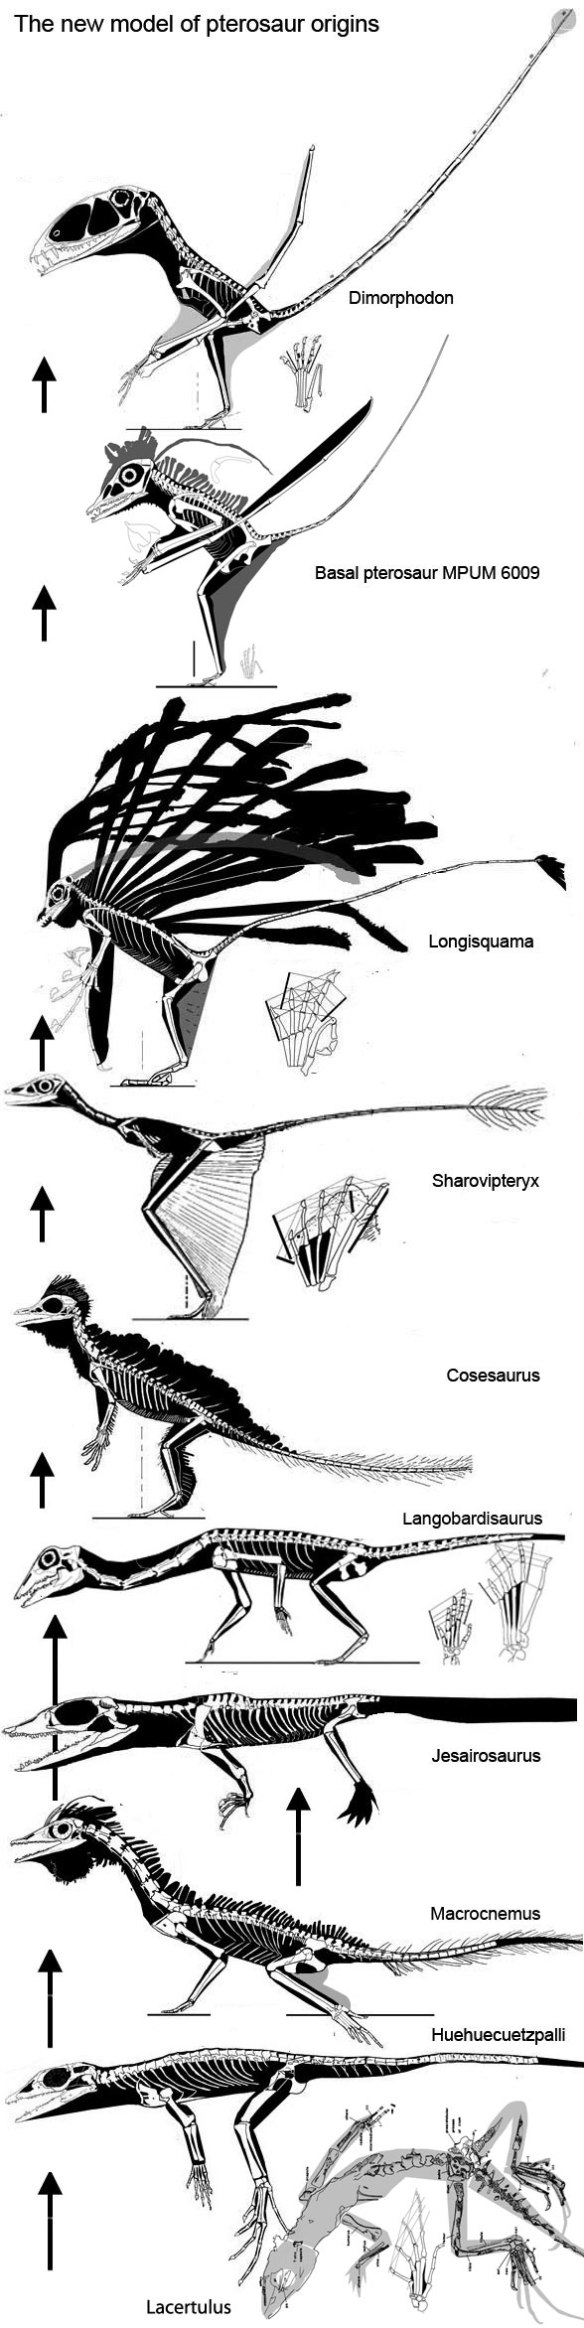 Squamates, tritosaurs and fenestrasaurs in the phylogenetic lineage preceding the origin of the Pterosauria.